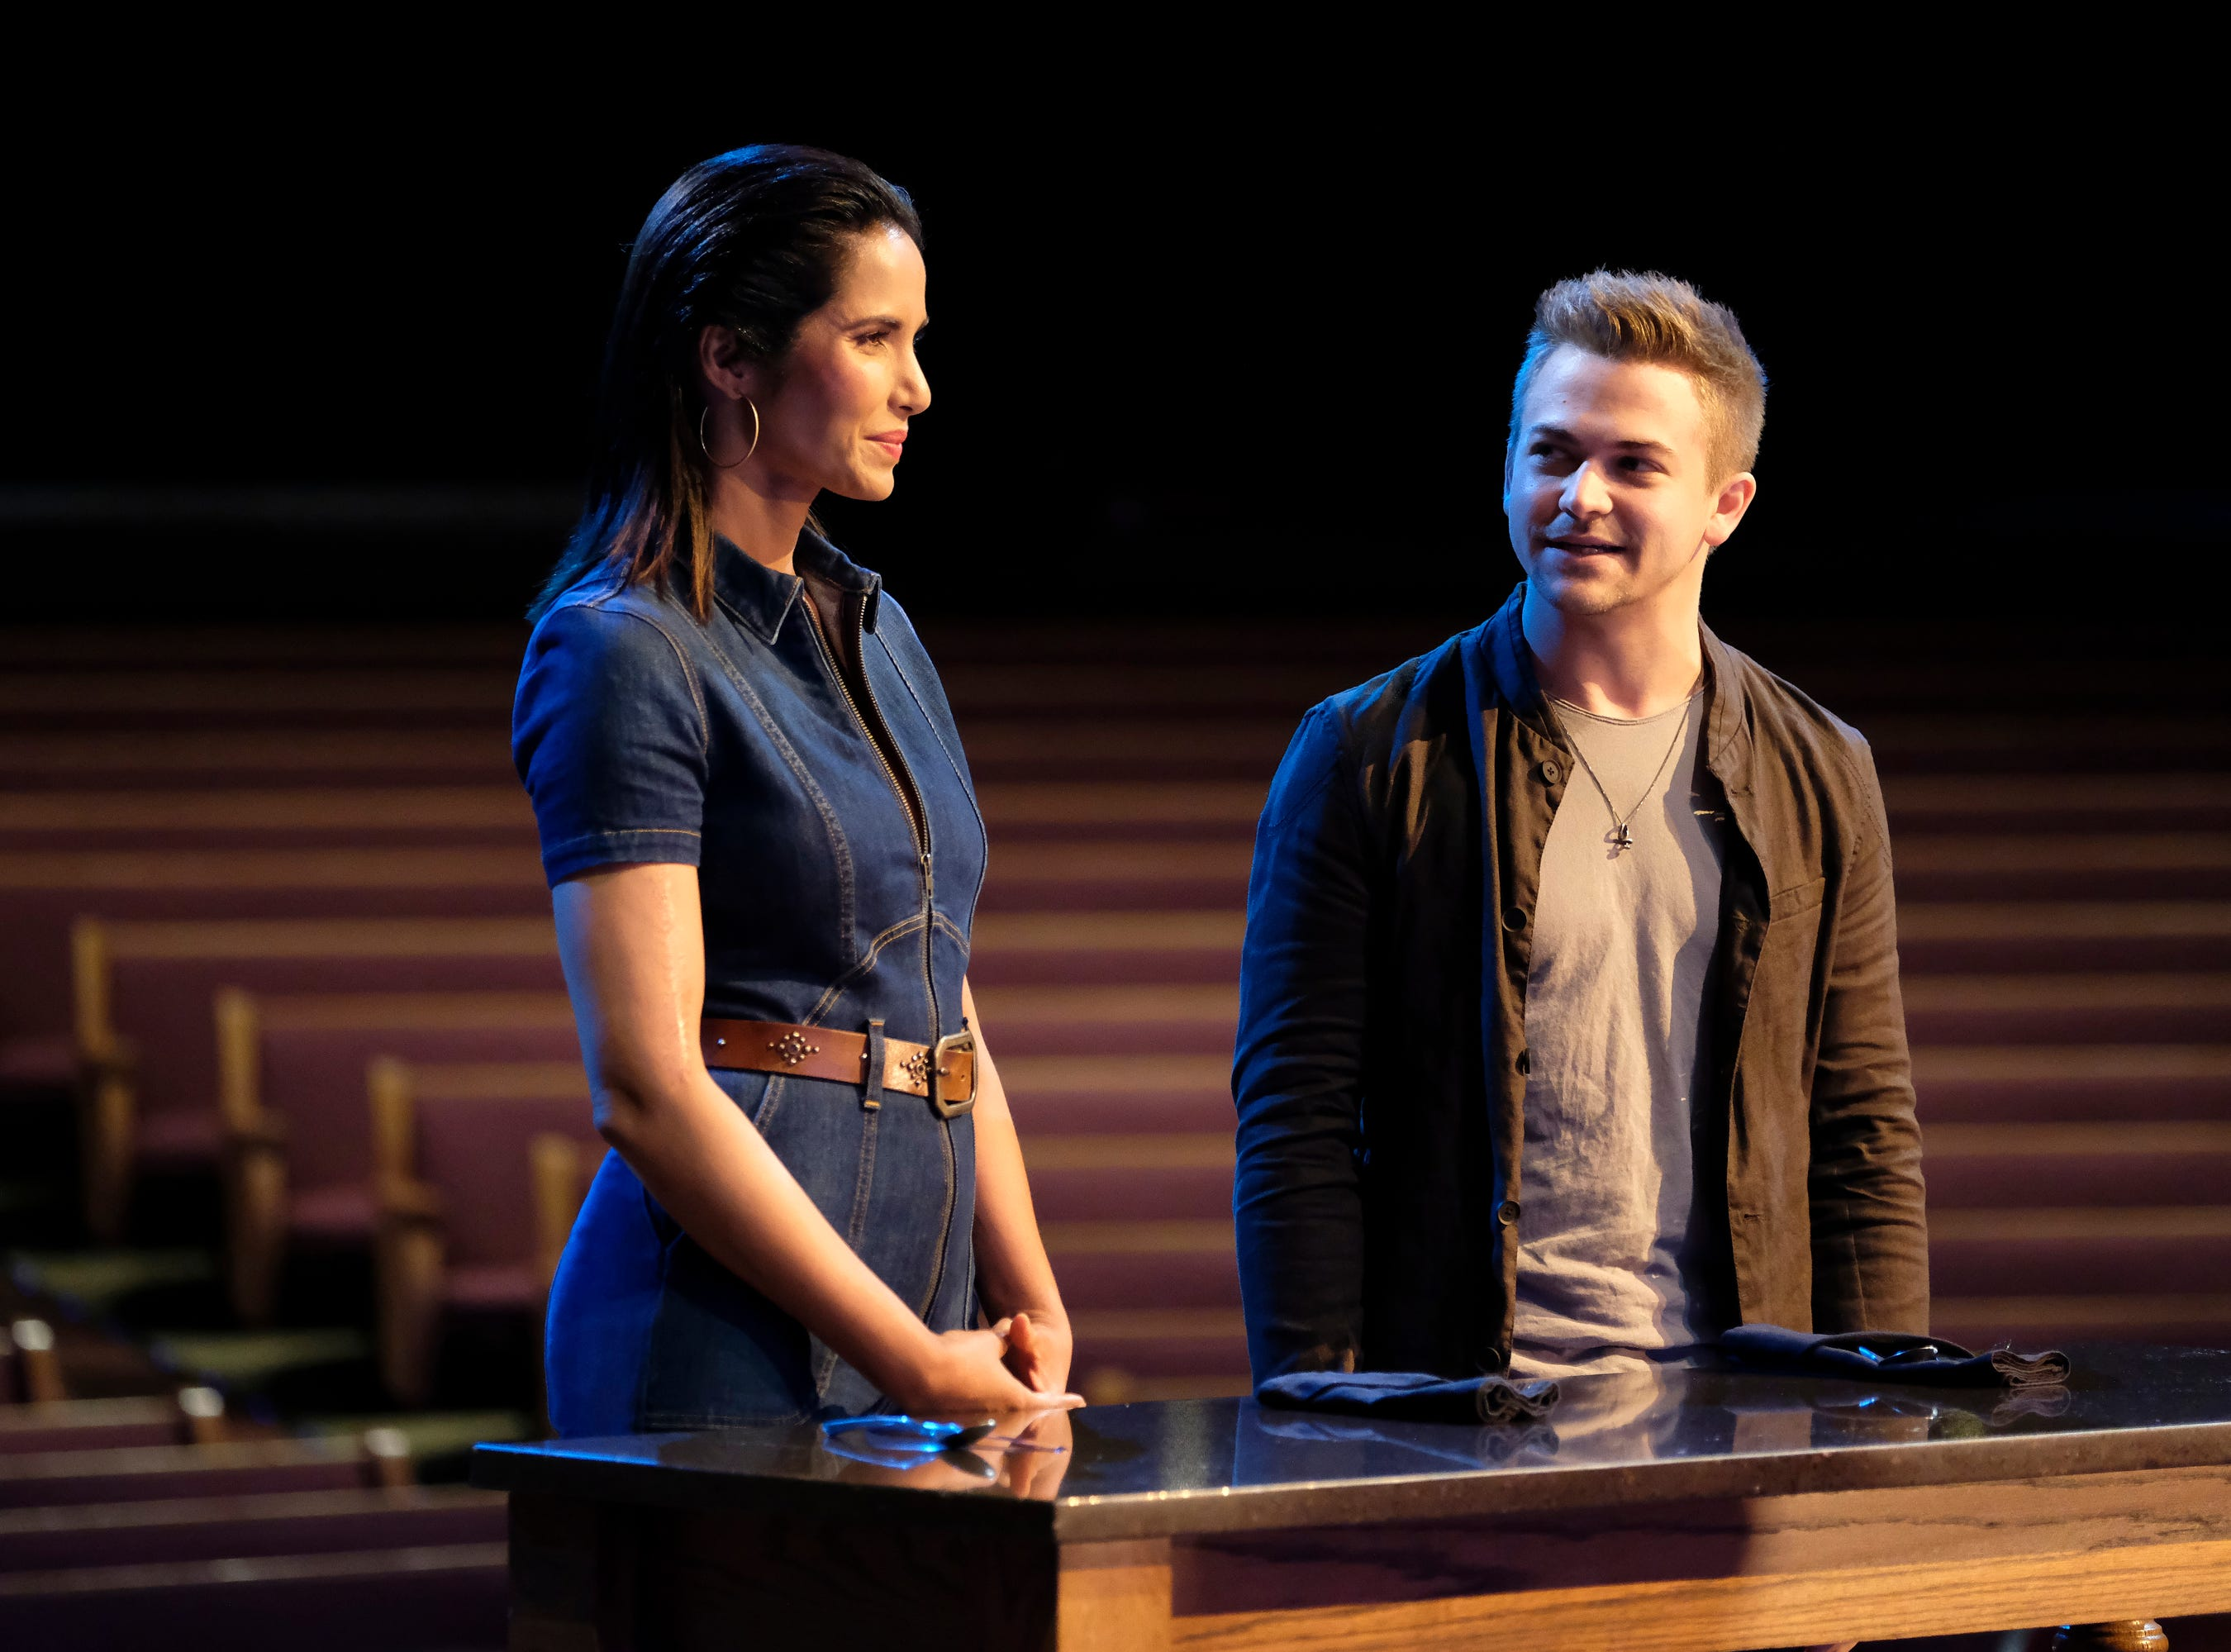 Host Padma Lakshmi and country music star Hunter Hayes on episode 9 of Bravo's 'Top Chef: Kentucky' season.